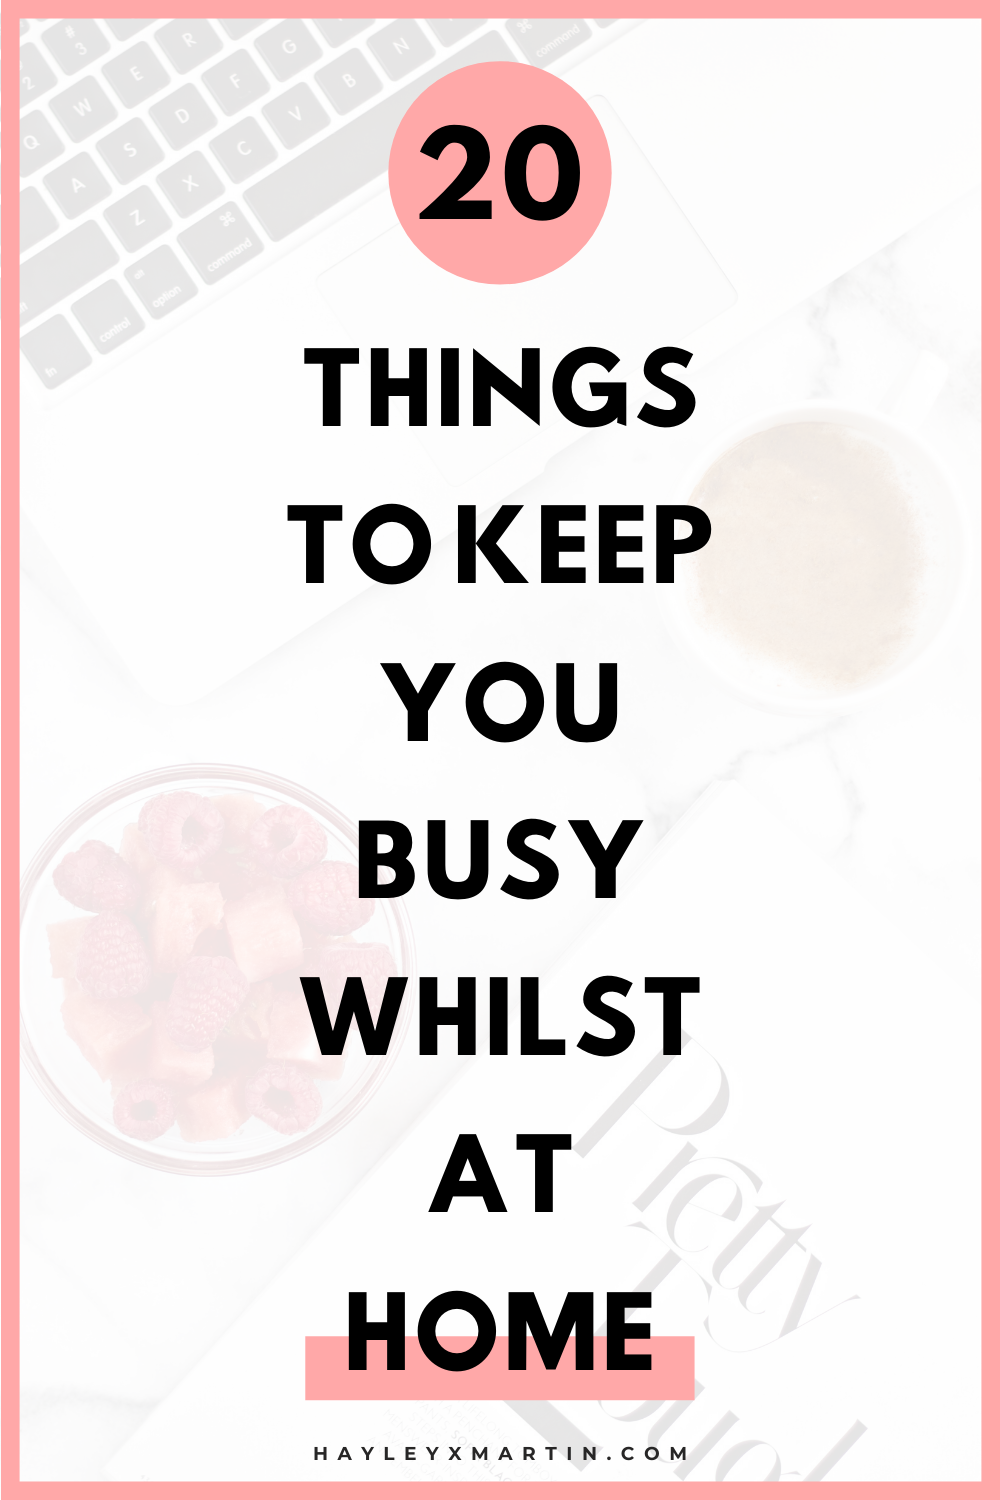 20 THINGS TO KEEP YOU BUSY WHILST AT HOME | 20 PRODUCTIVE THINGS TO DO AT HOME | HAYLEYXMARTIN